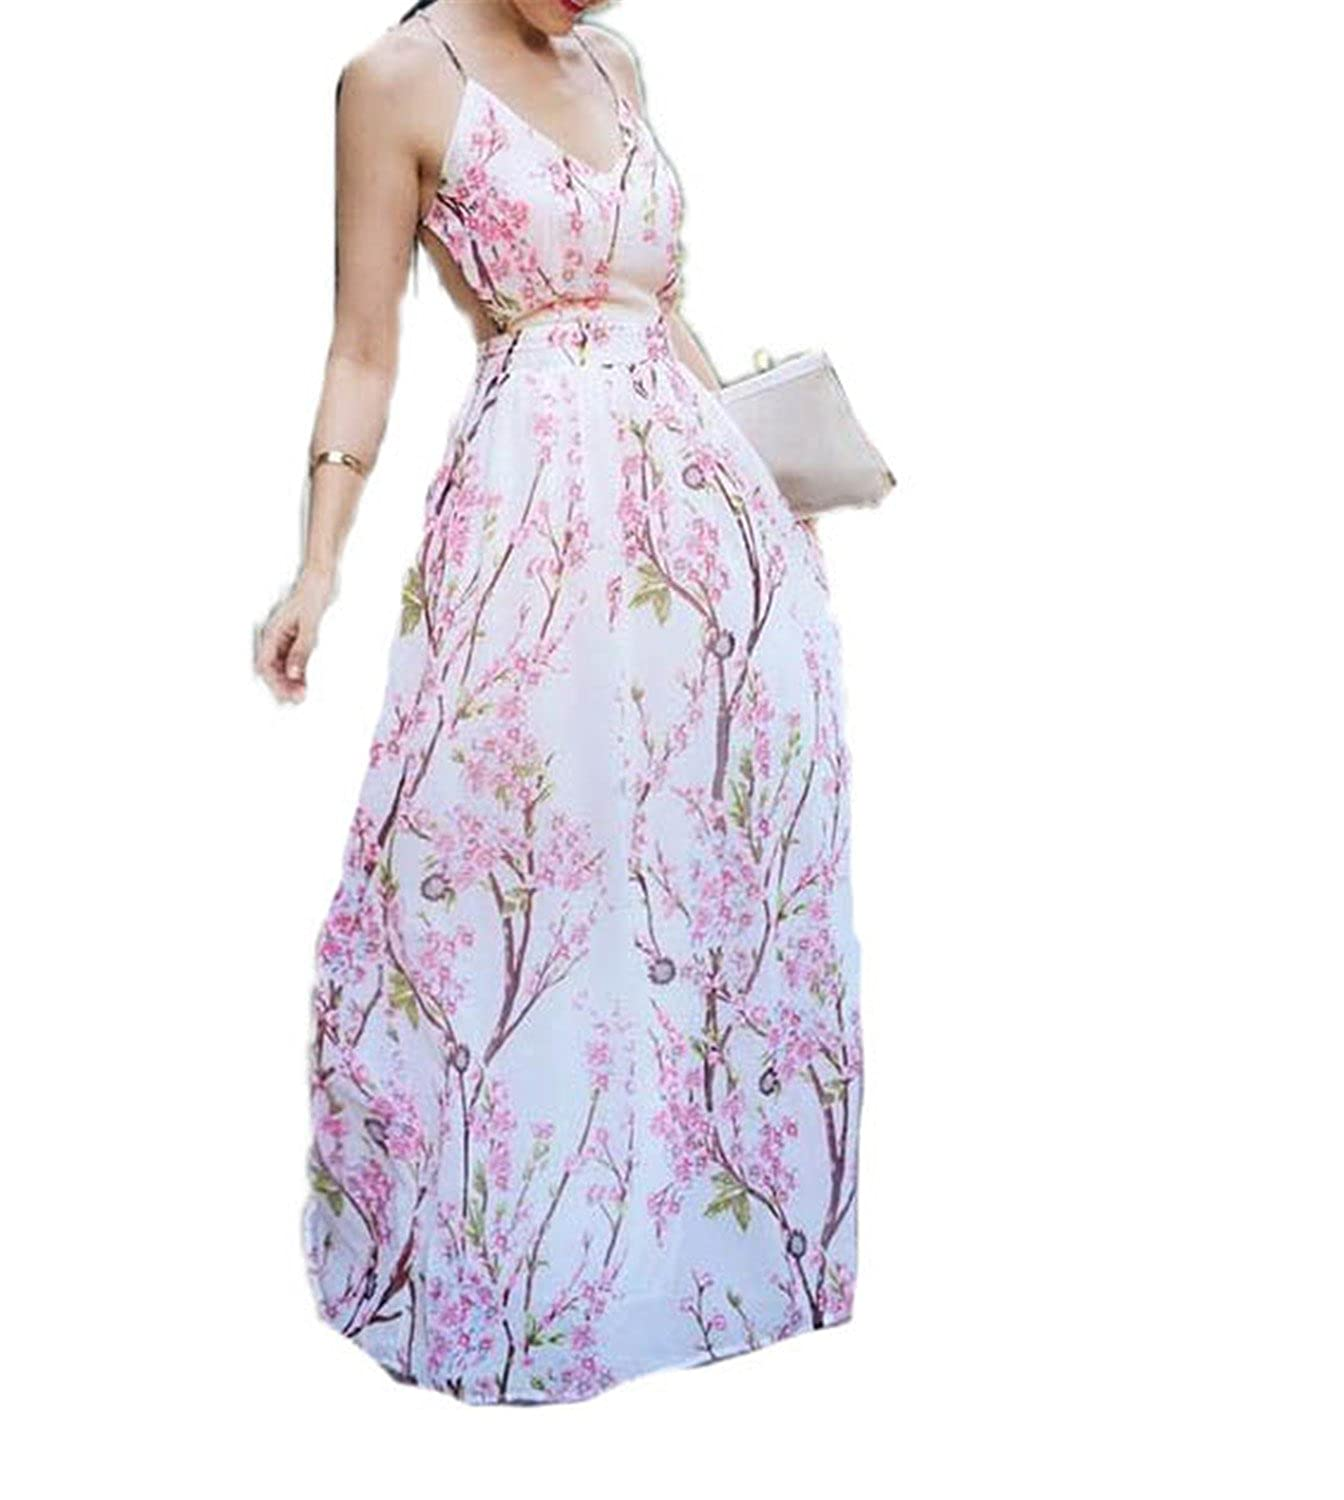 Amazon.com: Eloise Isabel Fashion dress sakura floral imprimir spaghetti strap v-neck backless chiffon beach dress plus size s-l vestidos: Clothing